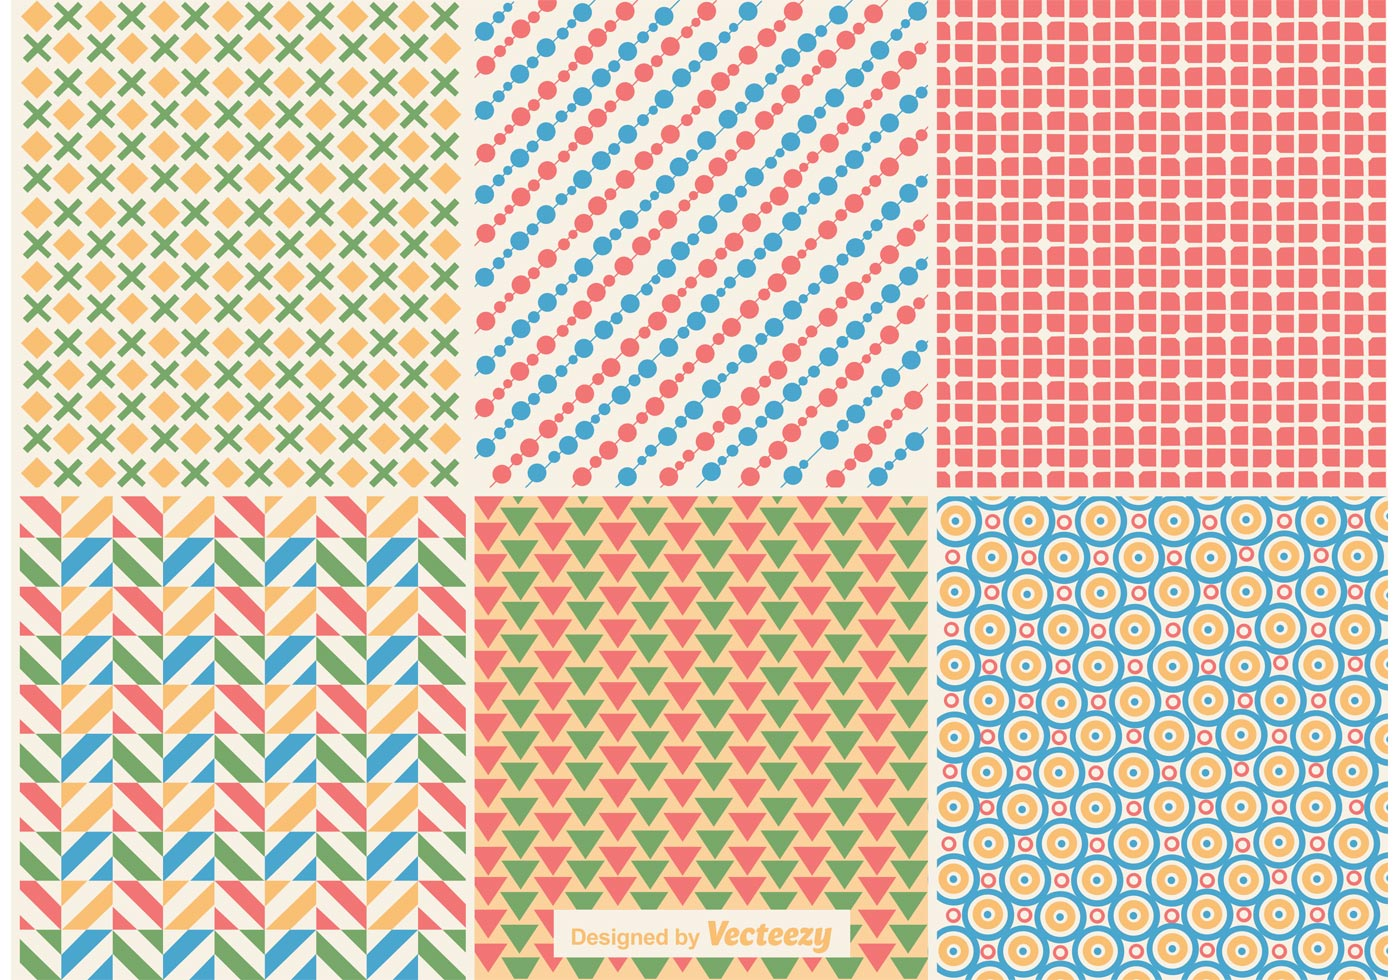 Geometric Retro Background Patterns - Download Free Vector ...